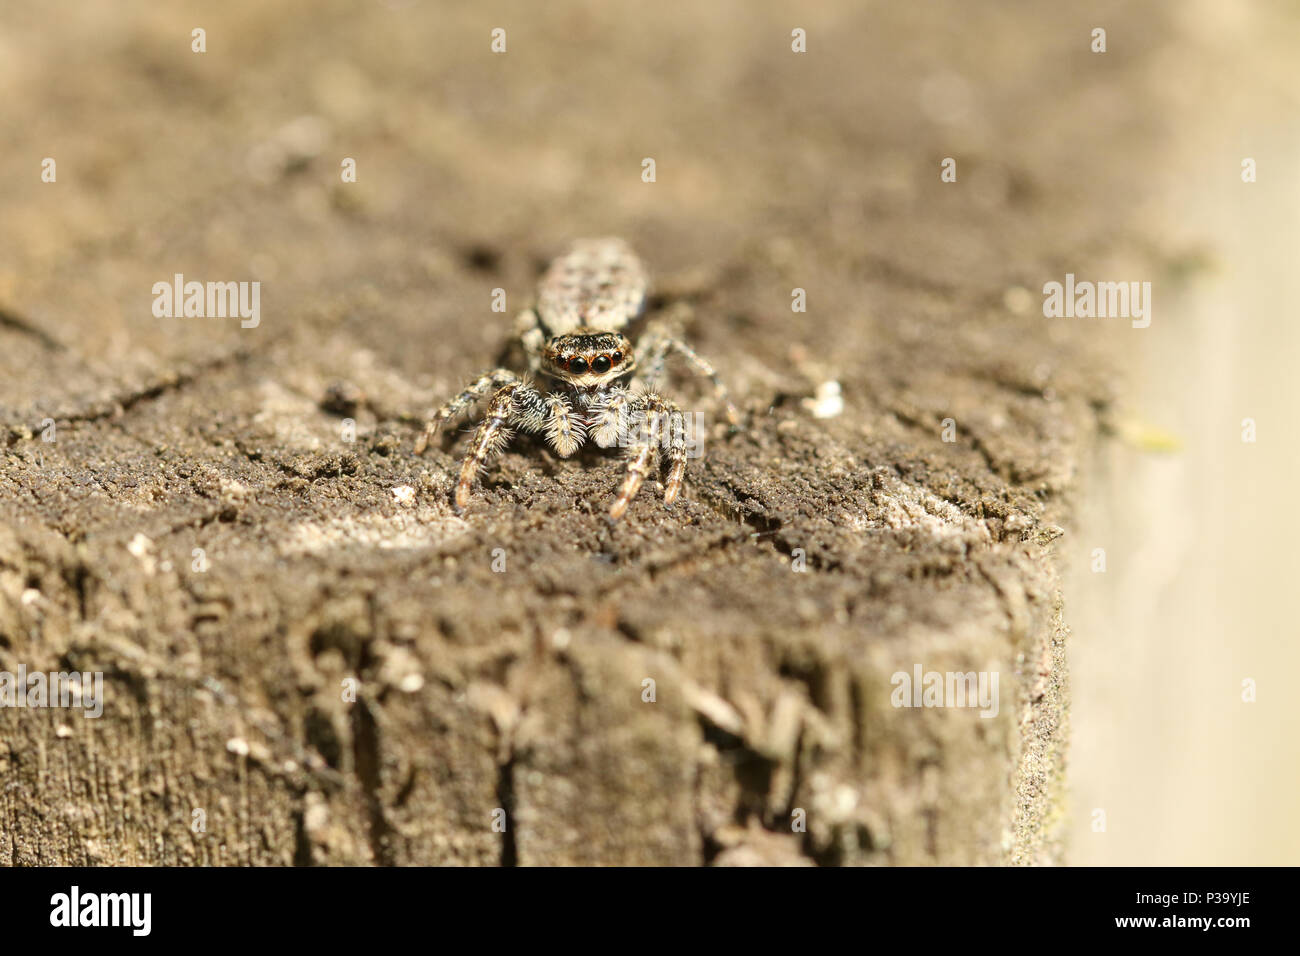 A cute Fence-Post Jumping Spider (Marpissa muscosa) on a wooden fence hunting for insects. - Stock Image